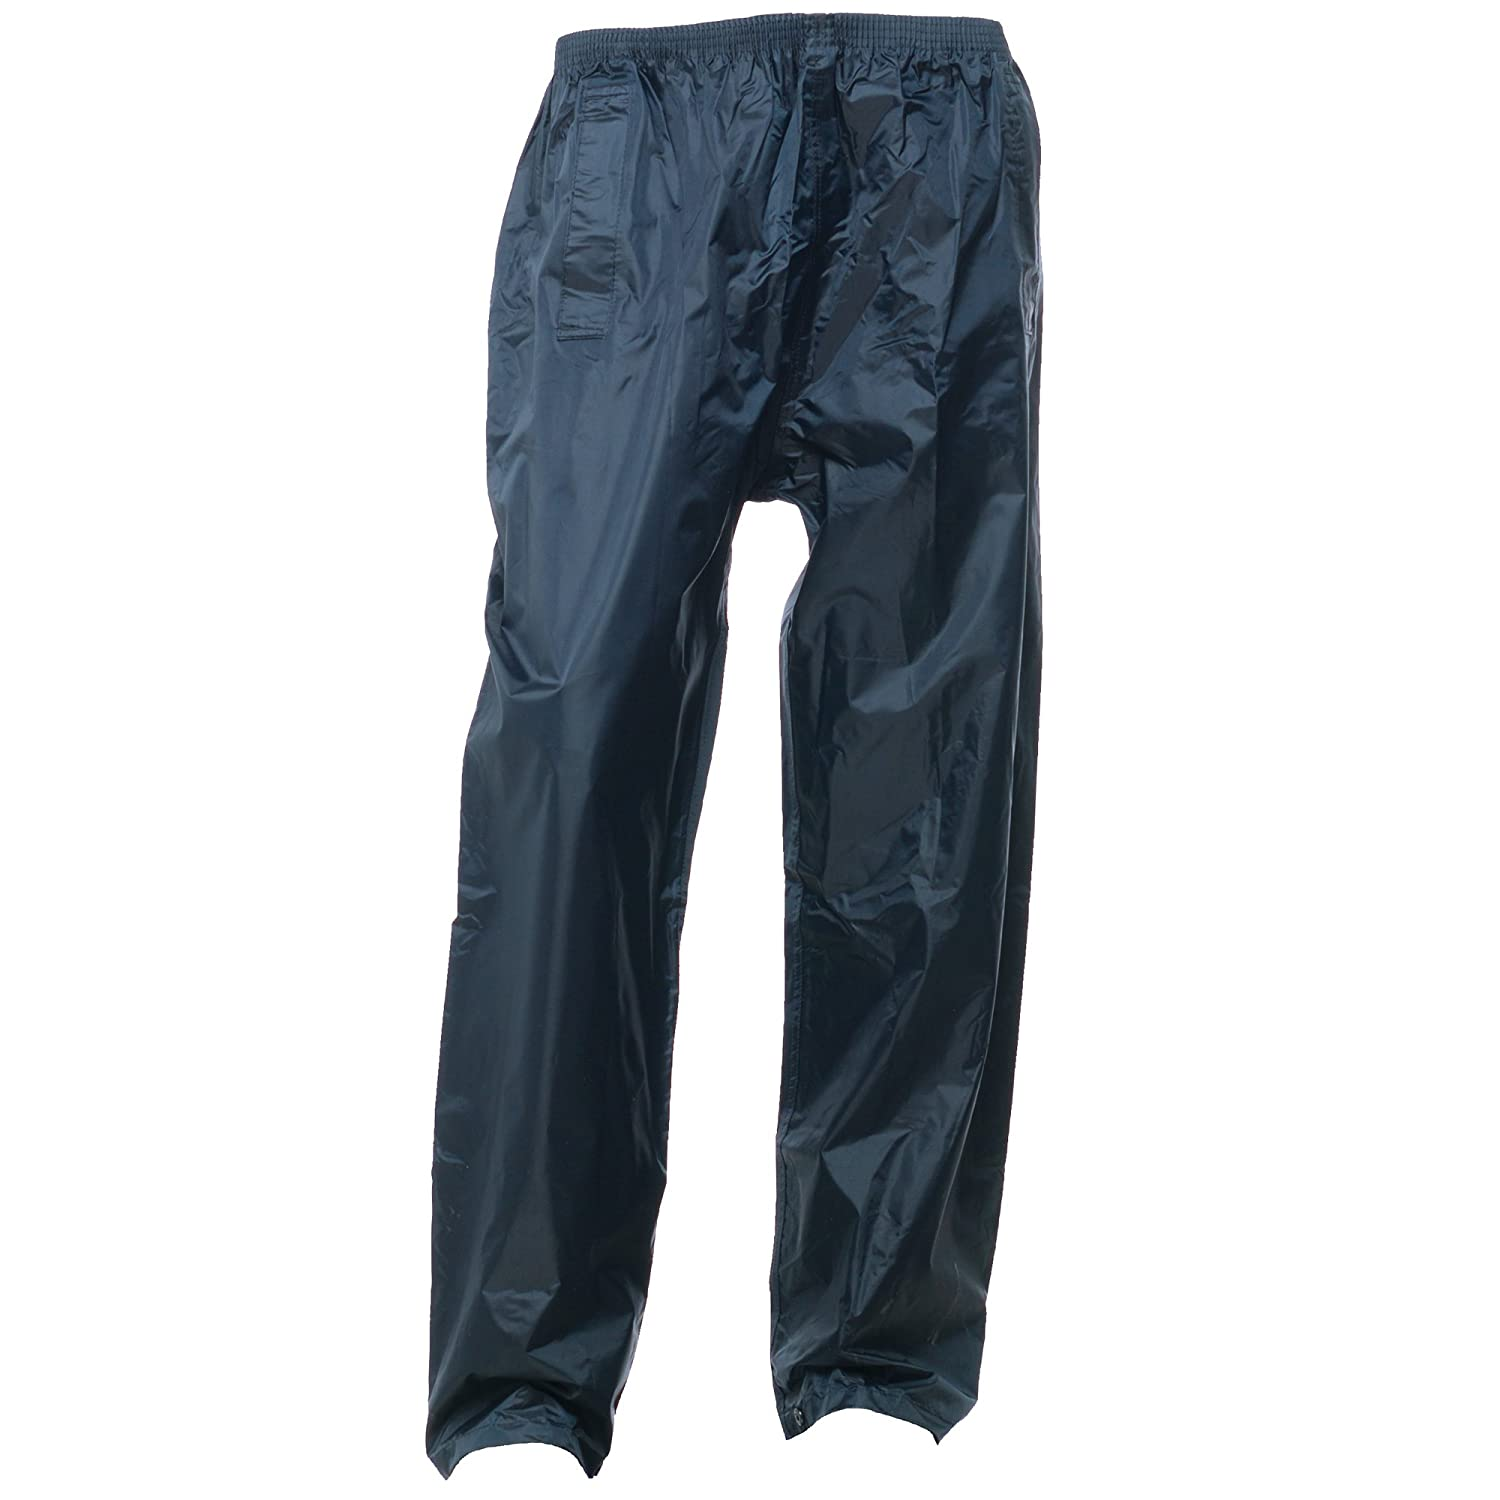 Regatta Mens Stormbreak Waterproof Windproof Over Trousers/Pants/Rain Wear